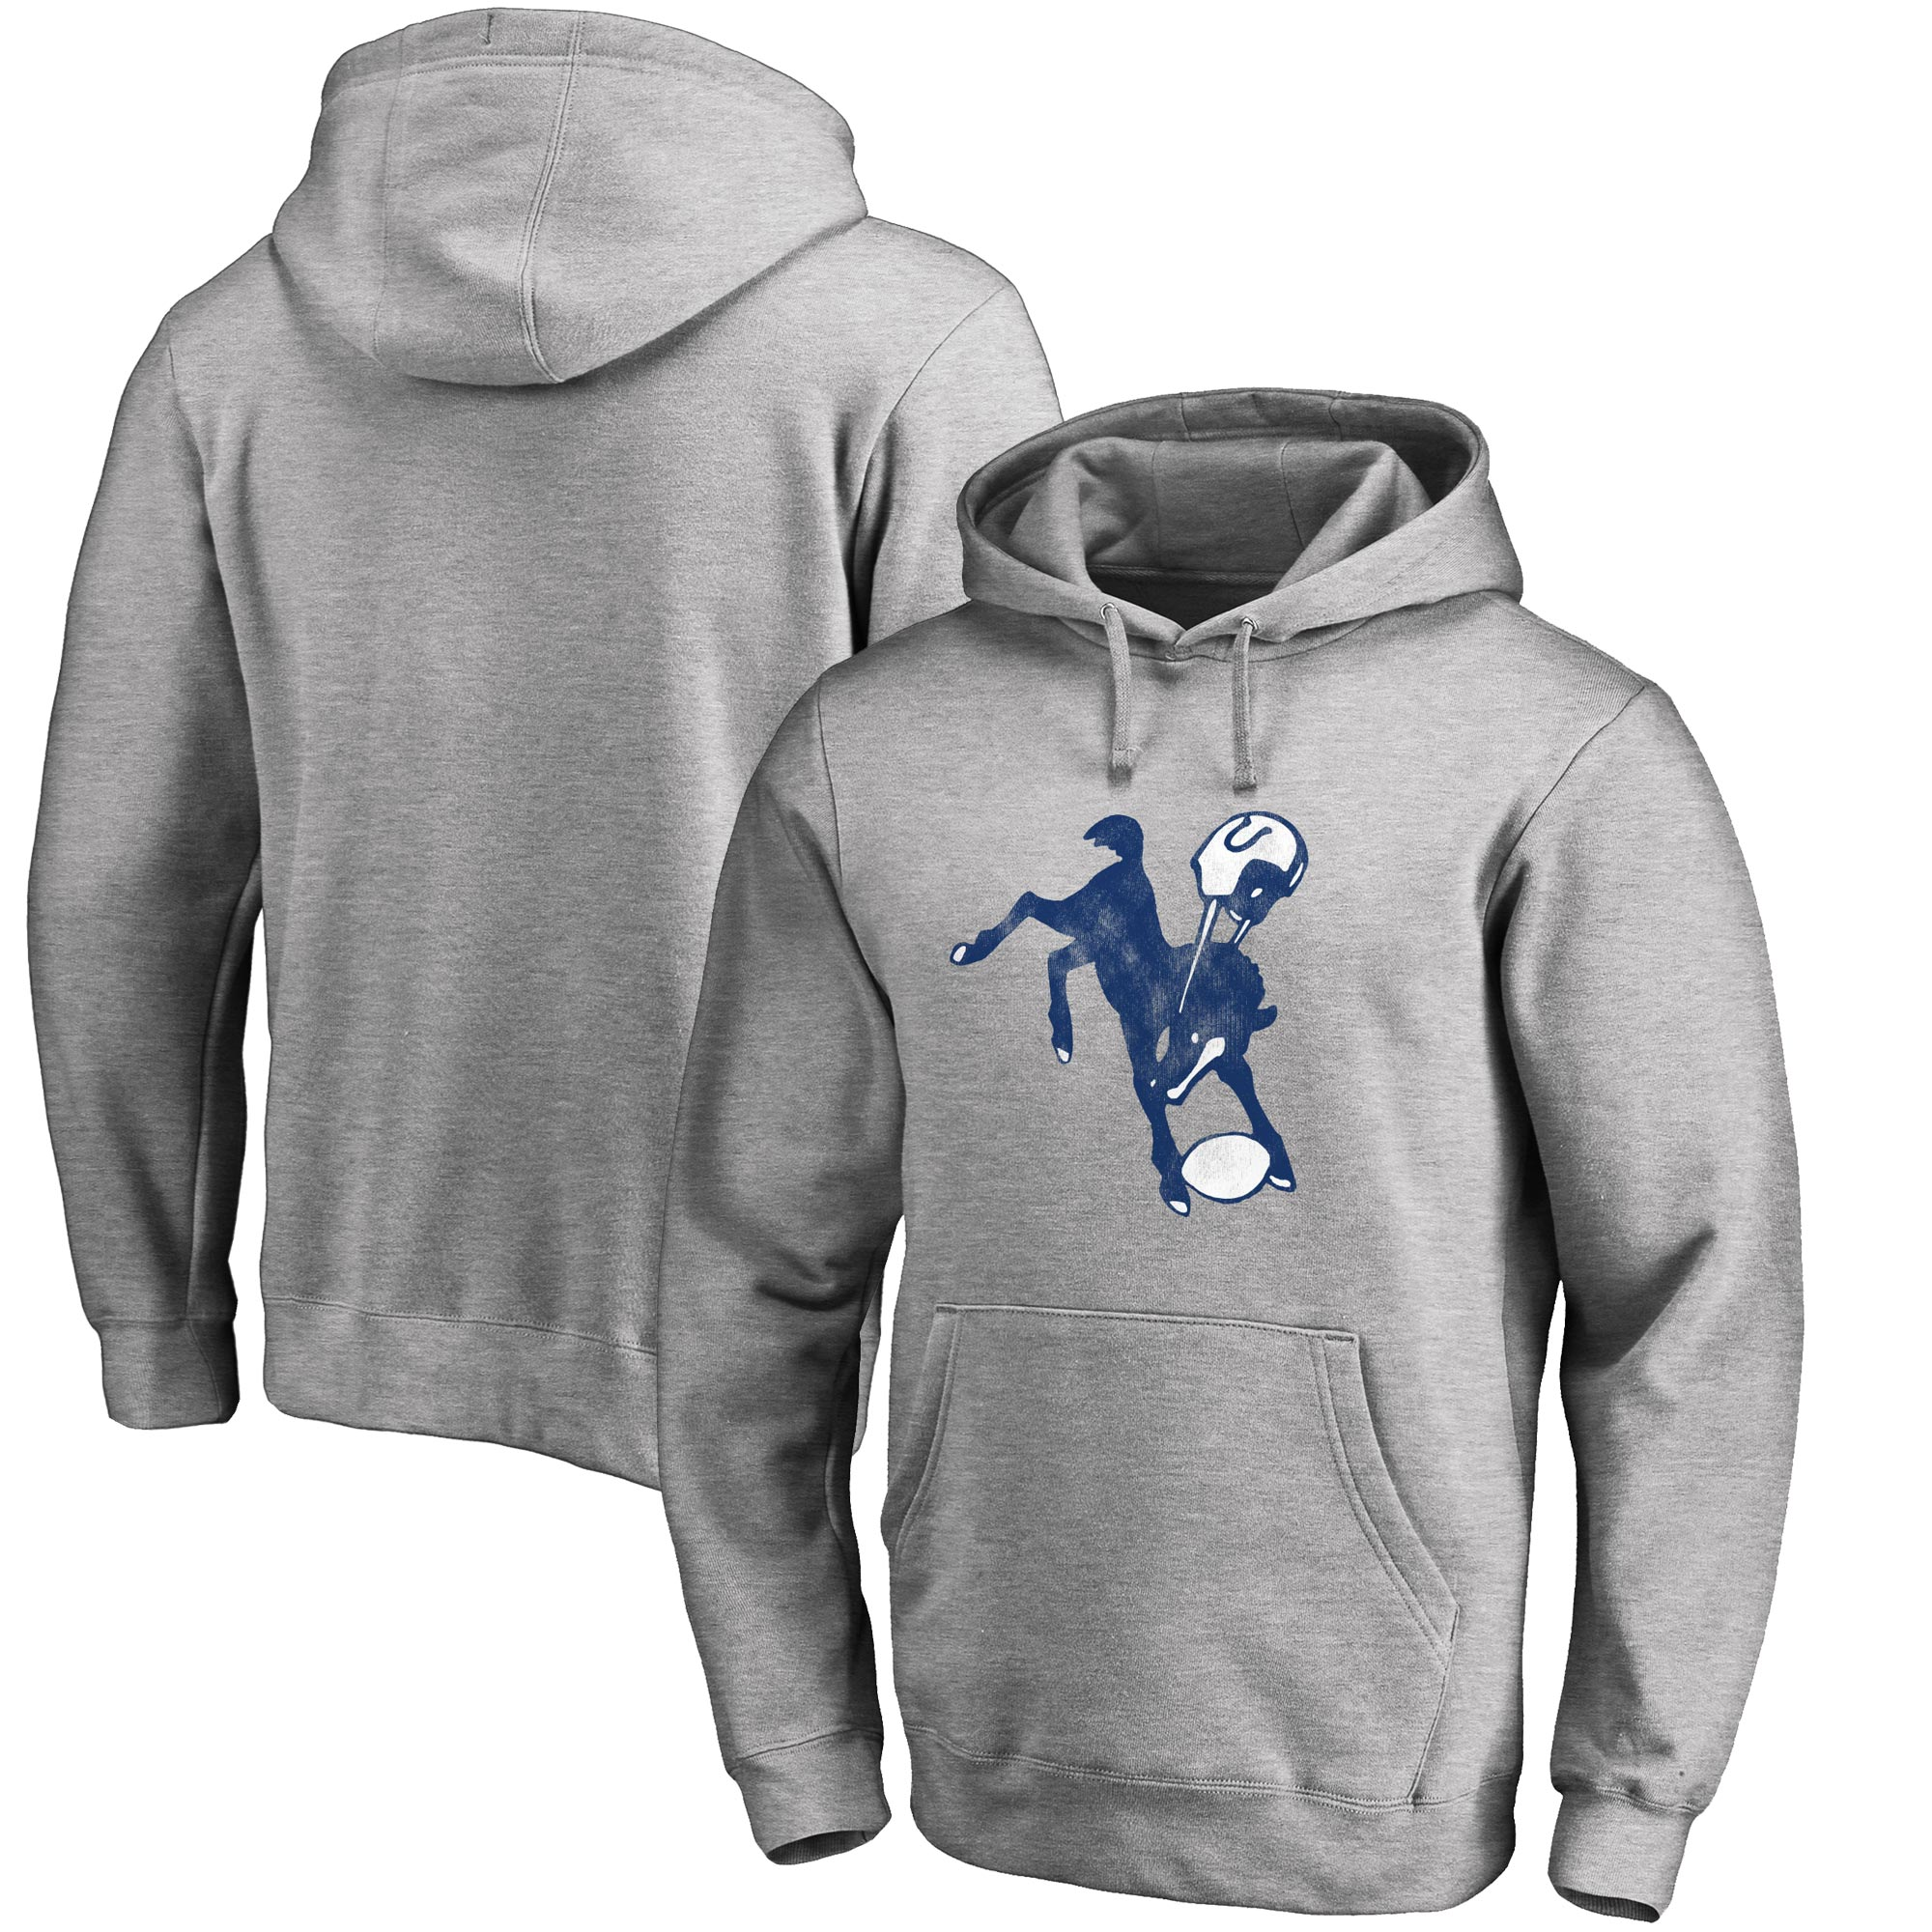 Indianapolis Colts NFL Pro Line Throwback Logo Pullover Hoodie - Gray